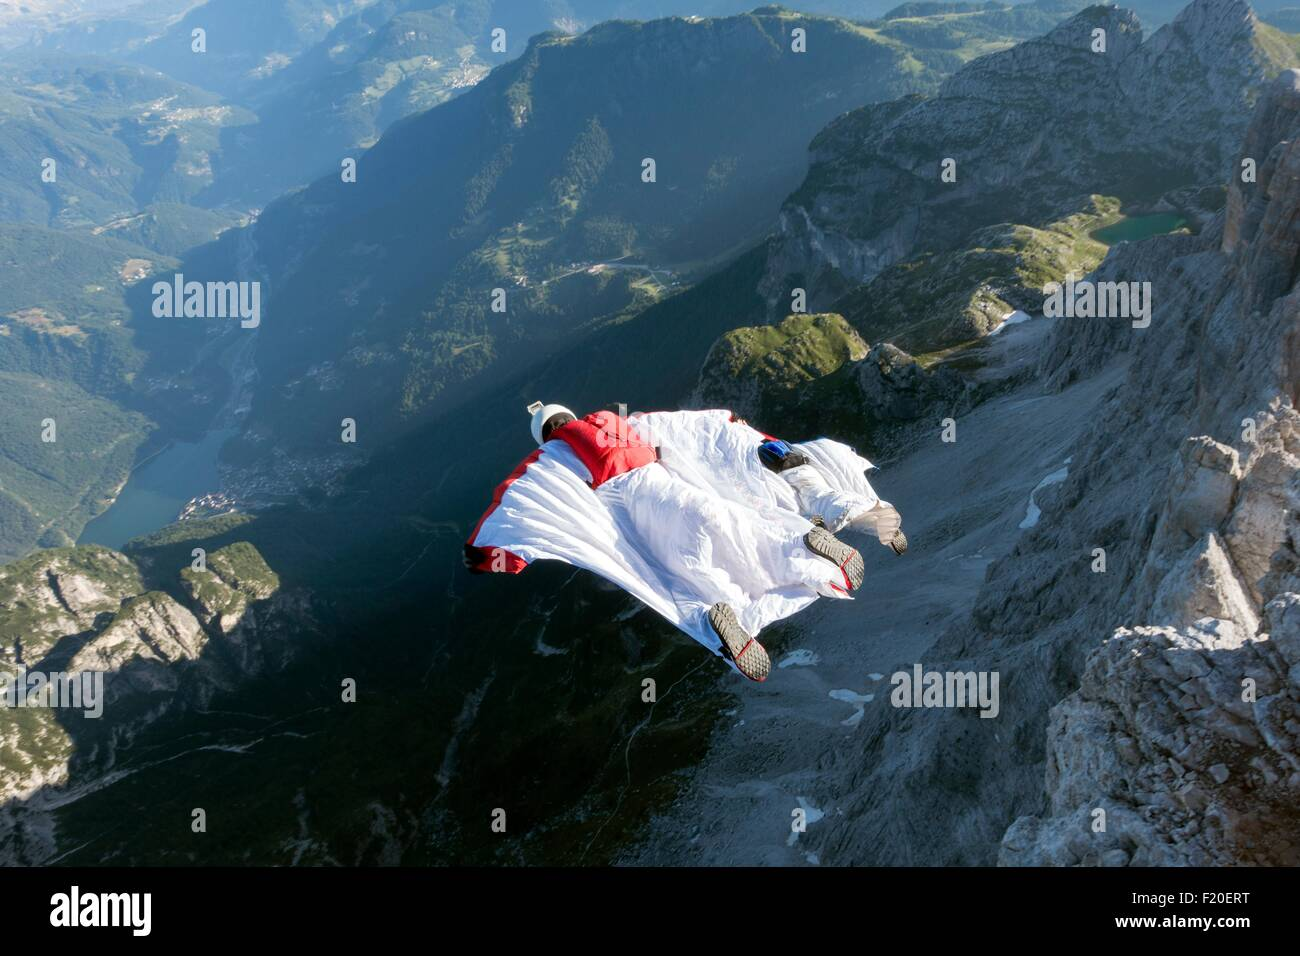 Two male BASE jumpers wingsuit flying from mountain, Dolomites, Italy - Stock Image